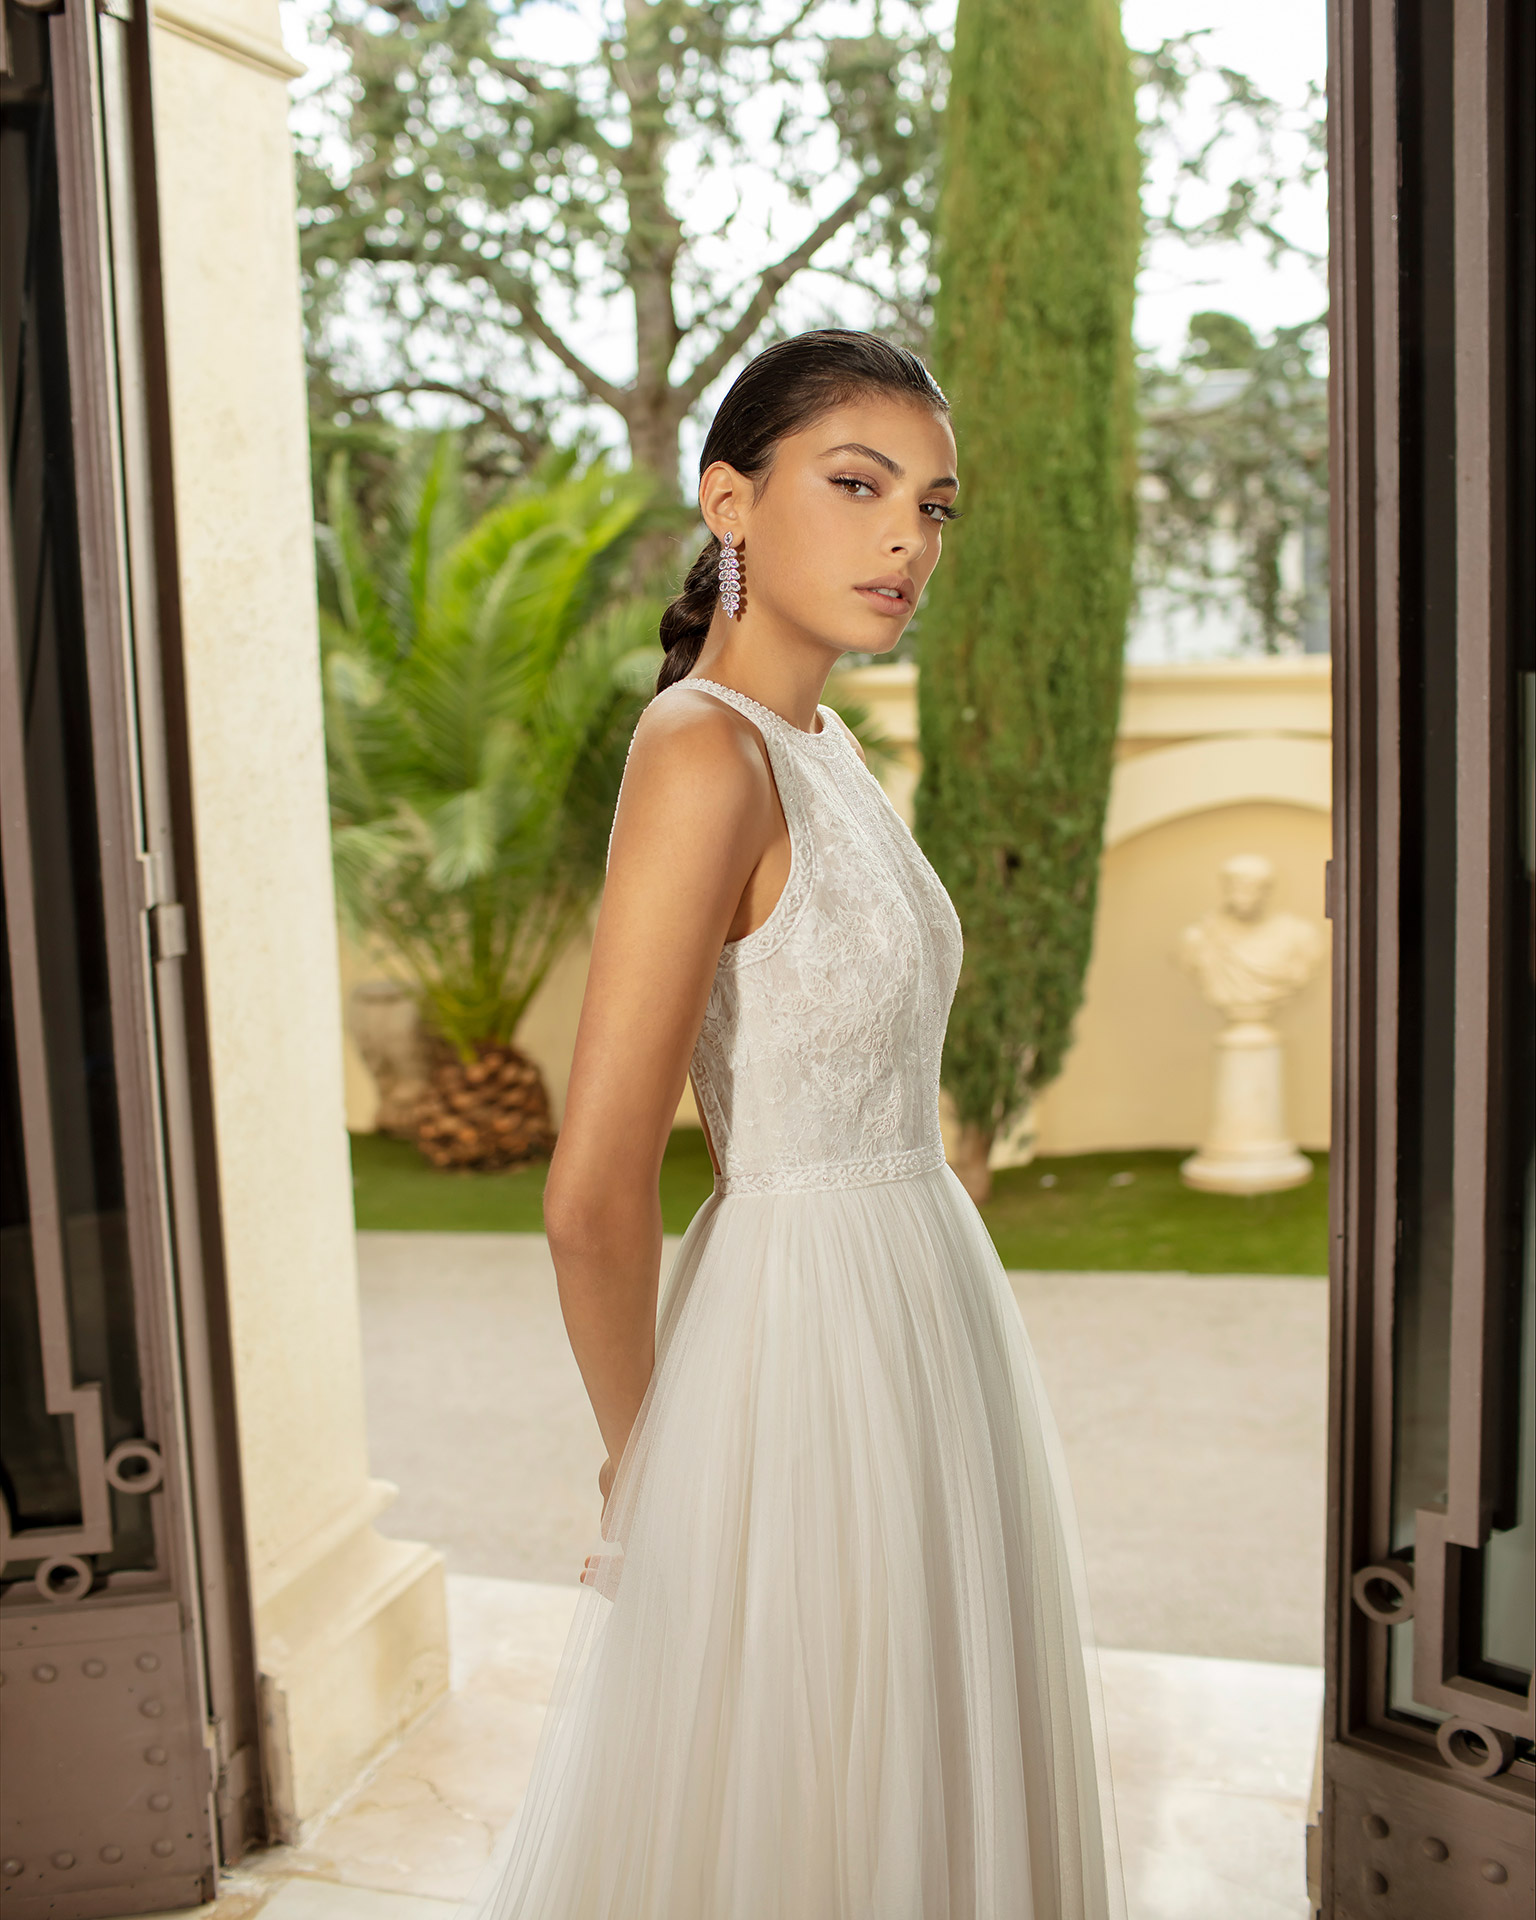 Romantic wedding dress in soft tulle, lace and beading with low back. 2020 ALMANOVIA Collection.